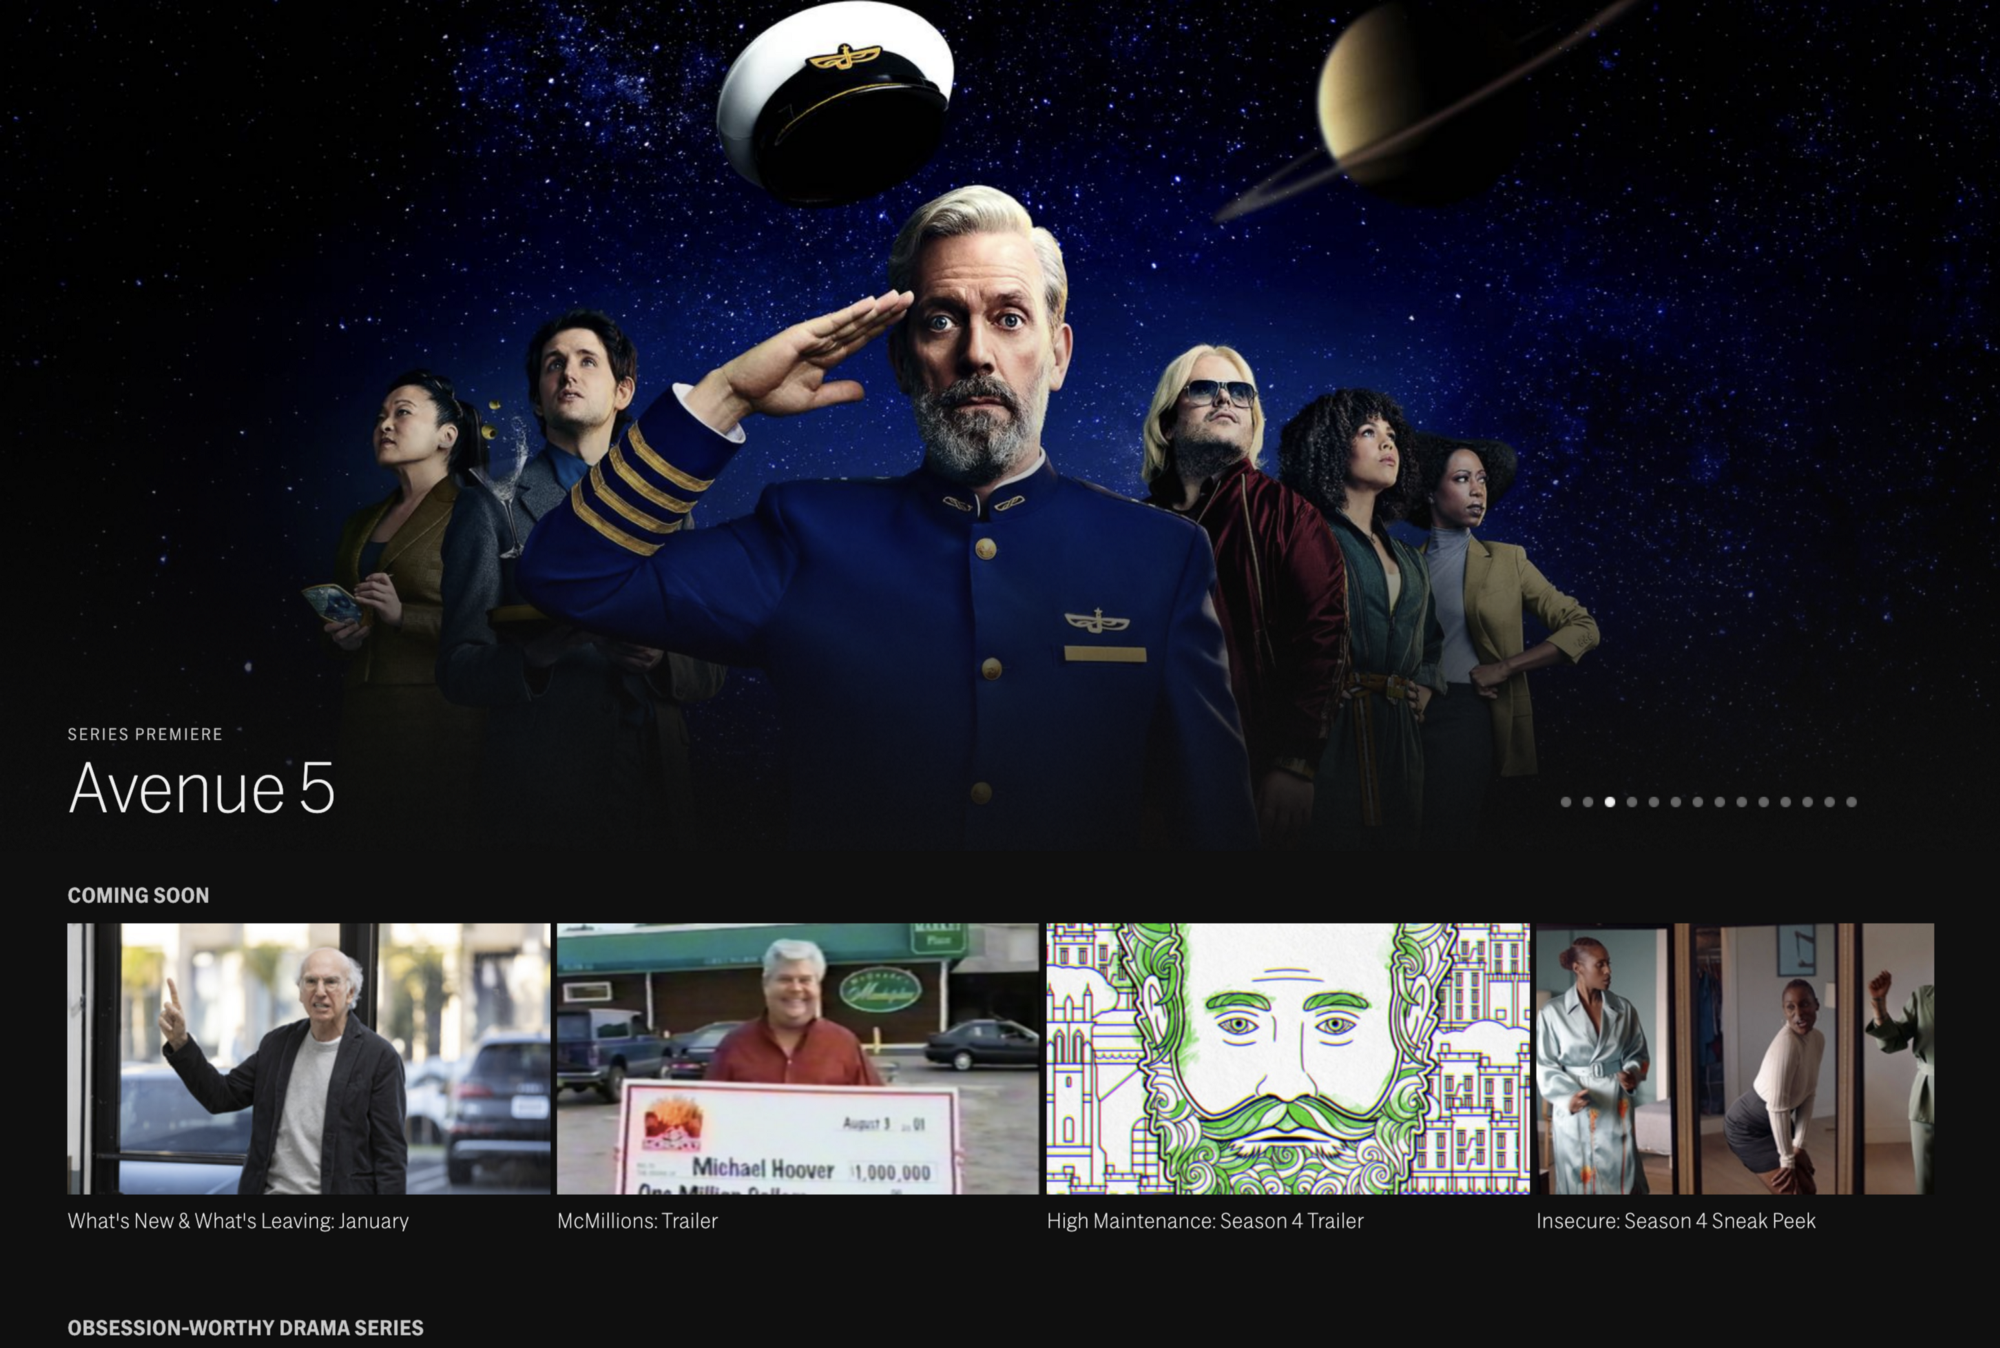 The HBO Now home screen is mostly promos at the top for that stuff that I haven't shown an interest in.